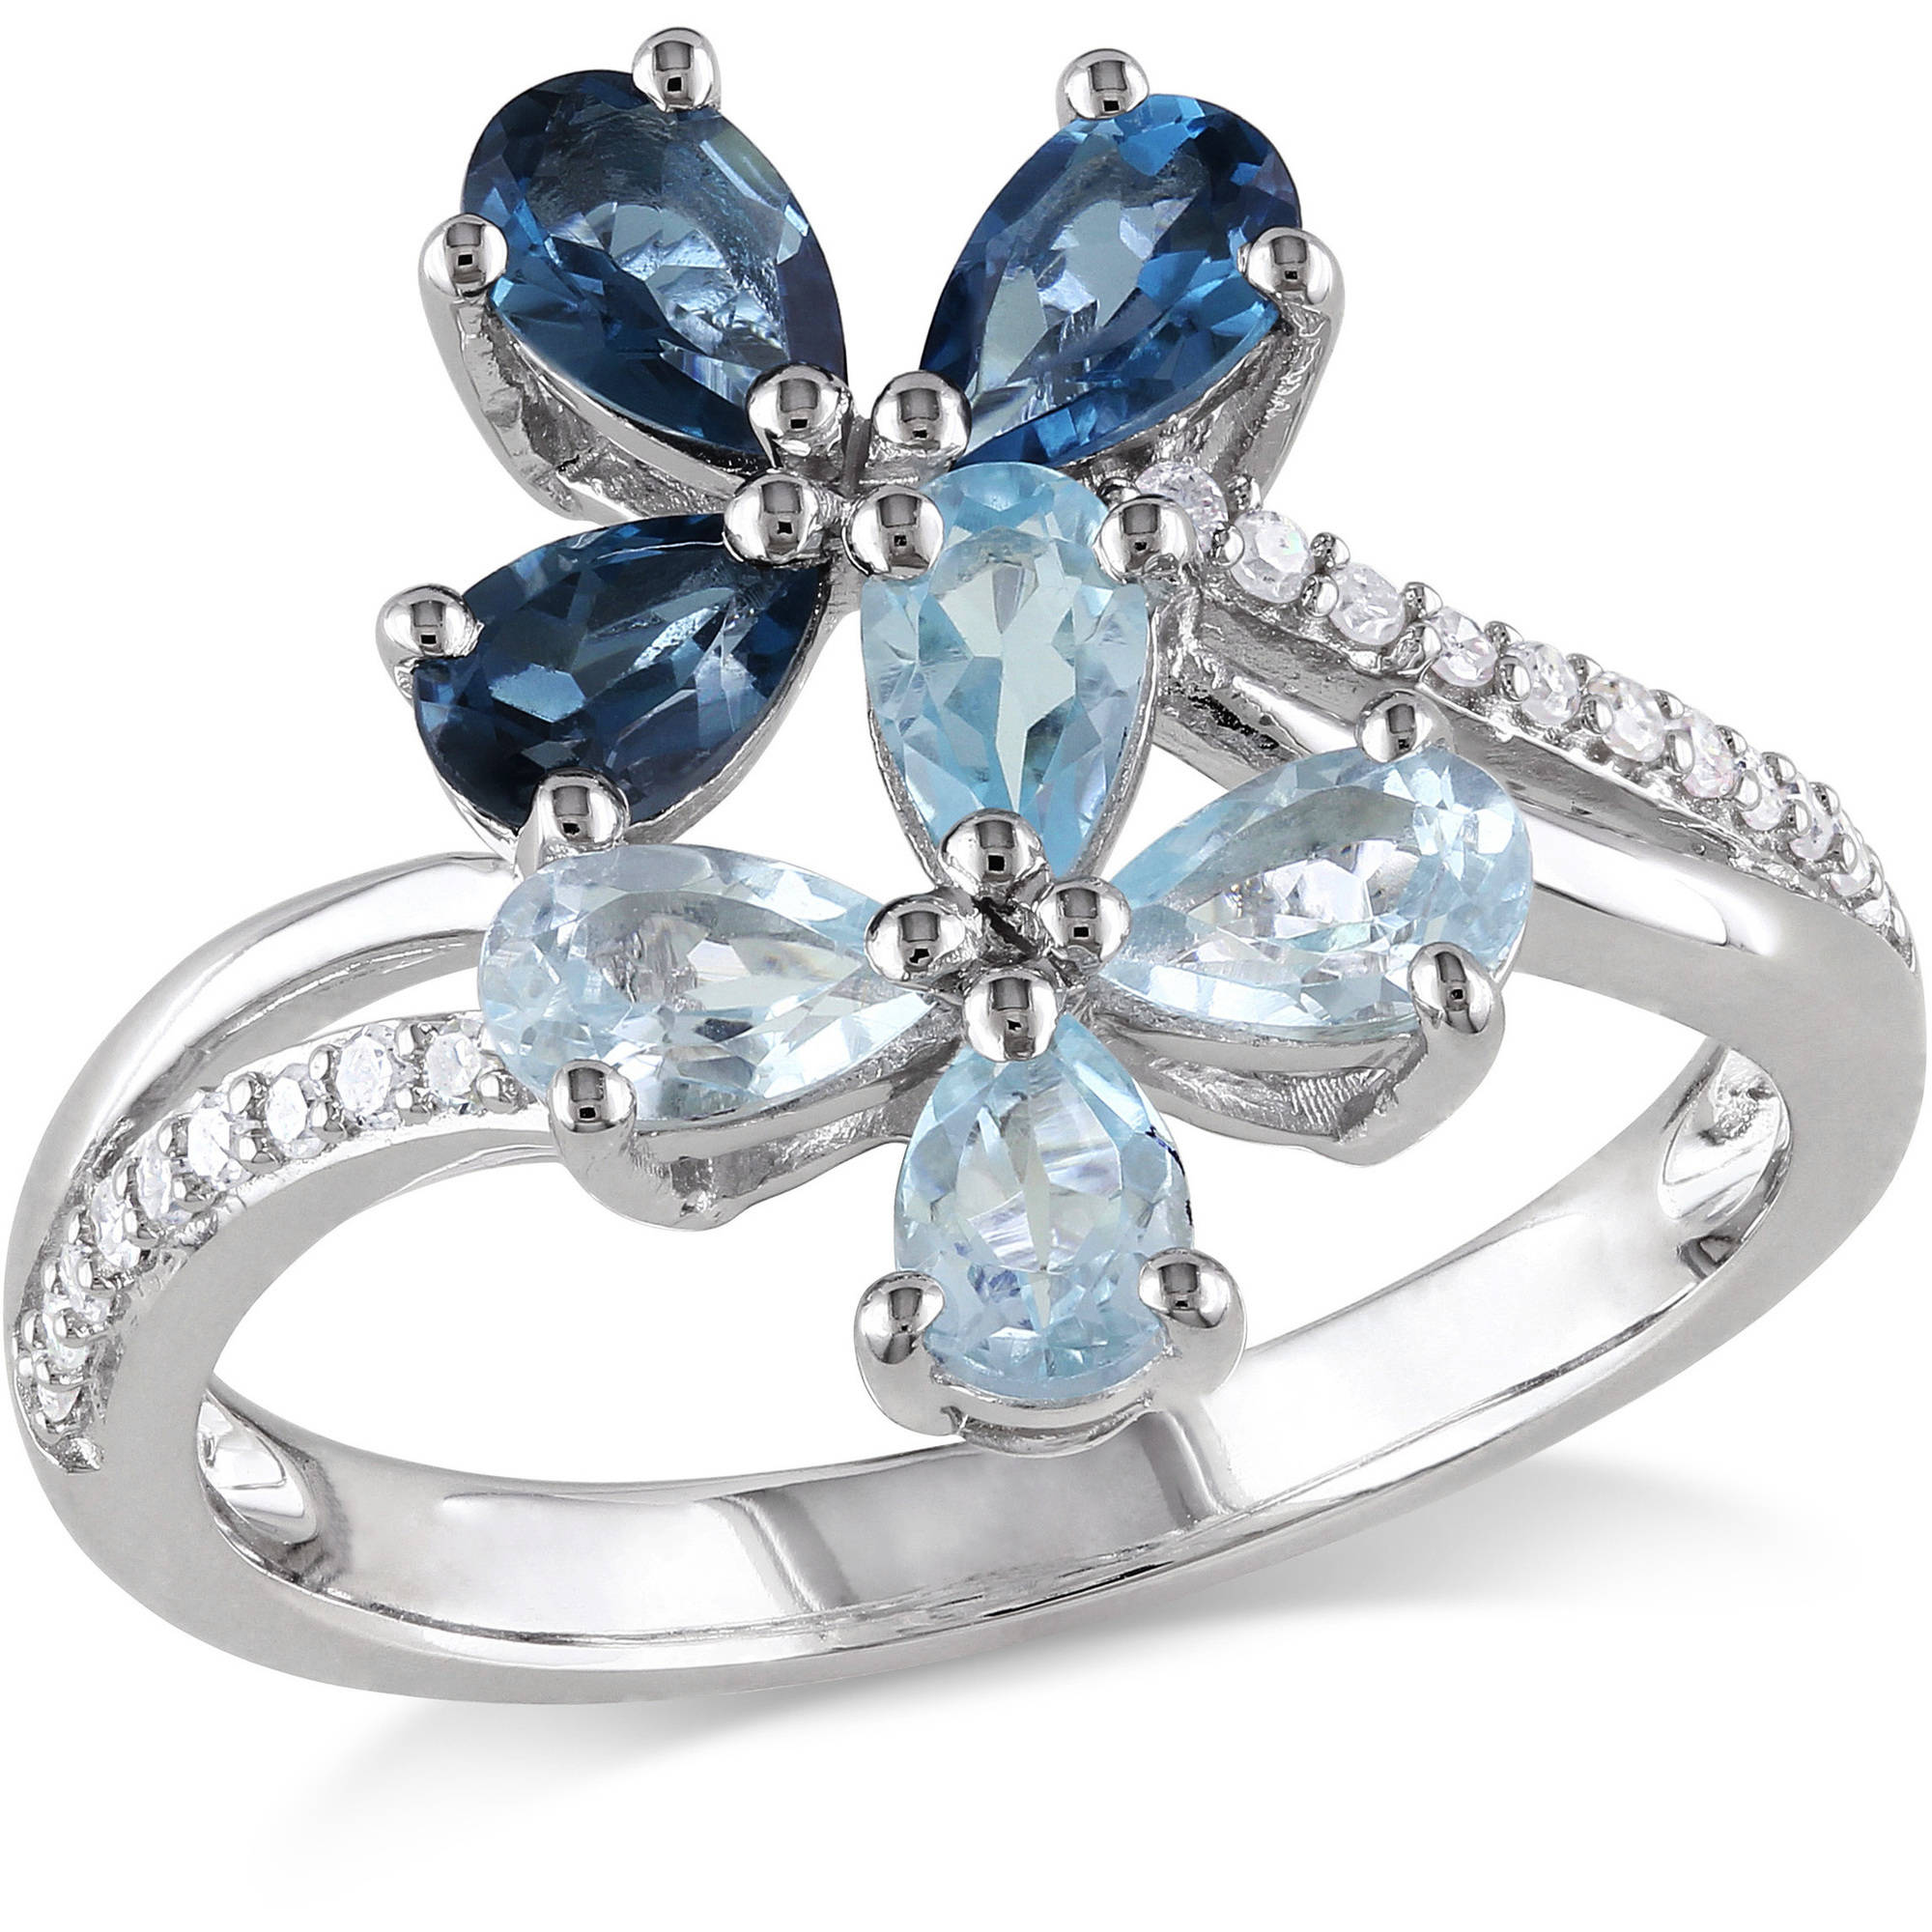 1-3/4 Carat T.G.W. Sky Blue Topaz and London Blue Topaz with Diamond-Accent Sterling Silver Bypass Flower Ring